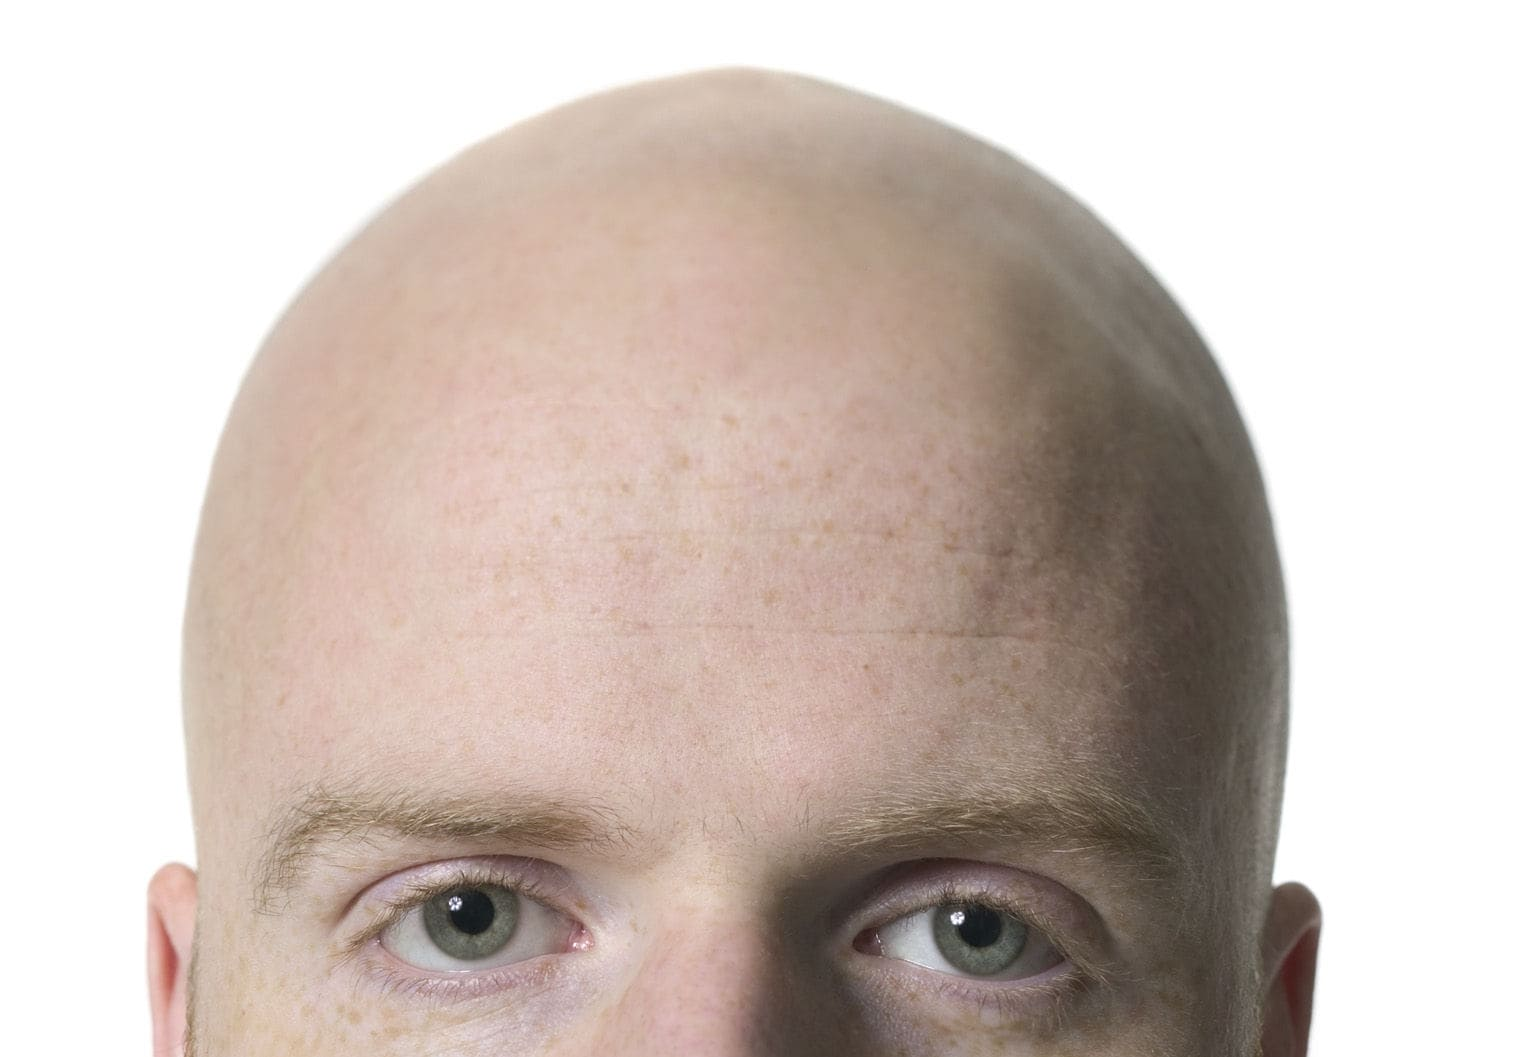 How-to-Regrow-Hair-Naturally-in-Bald-Area (1)